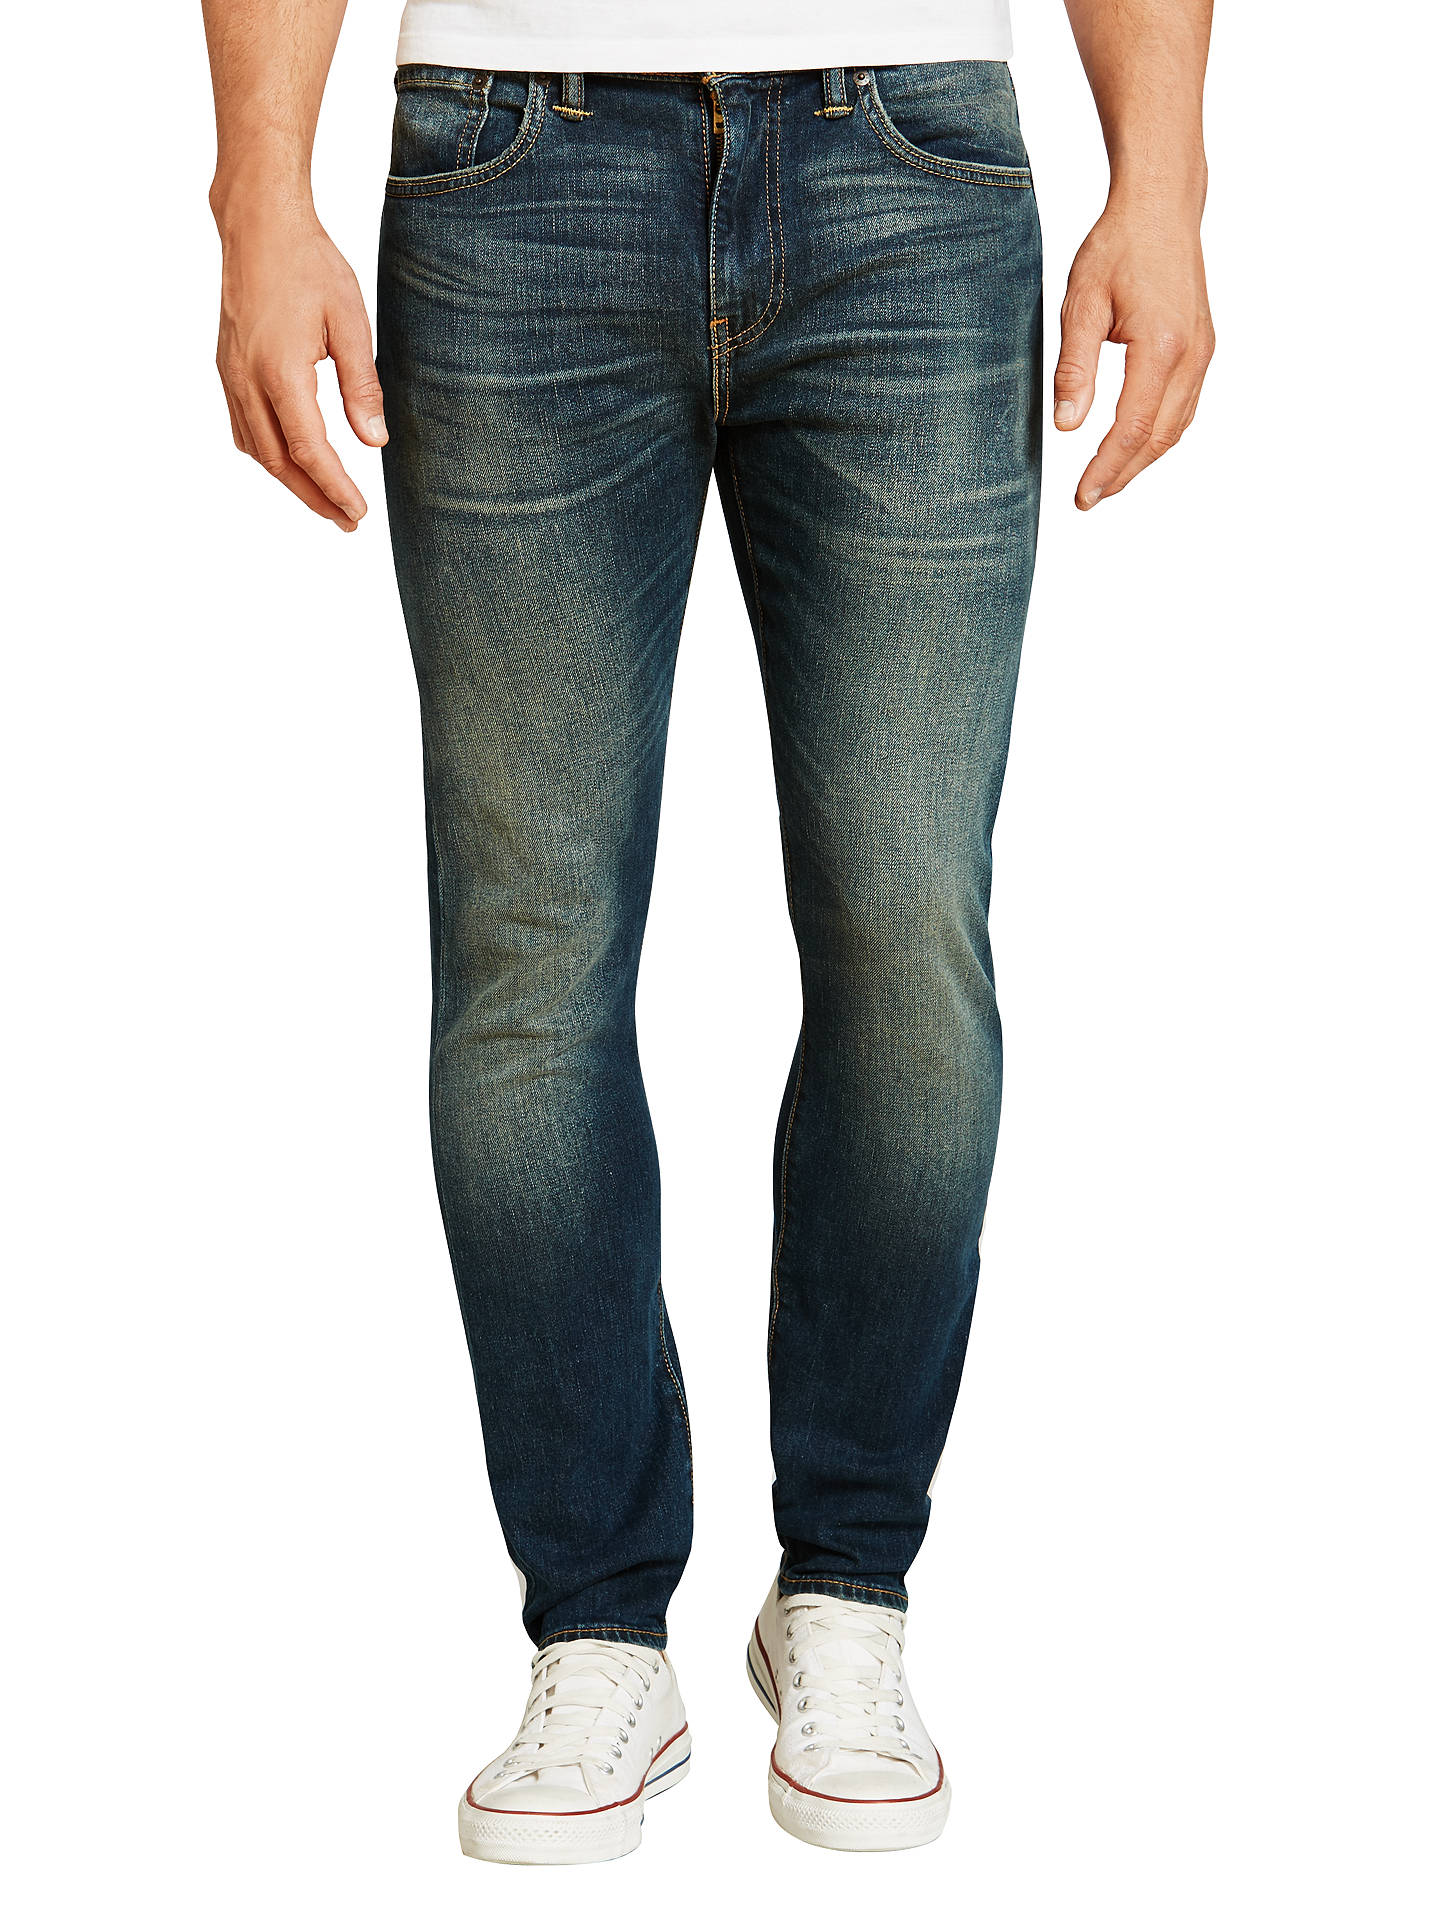 353f344cf3e Buy Levi's 512 Slim Tapered Jeans, Captain Patrick, 34S Online at  johnlewis. ...